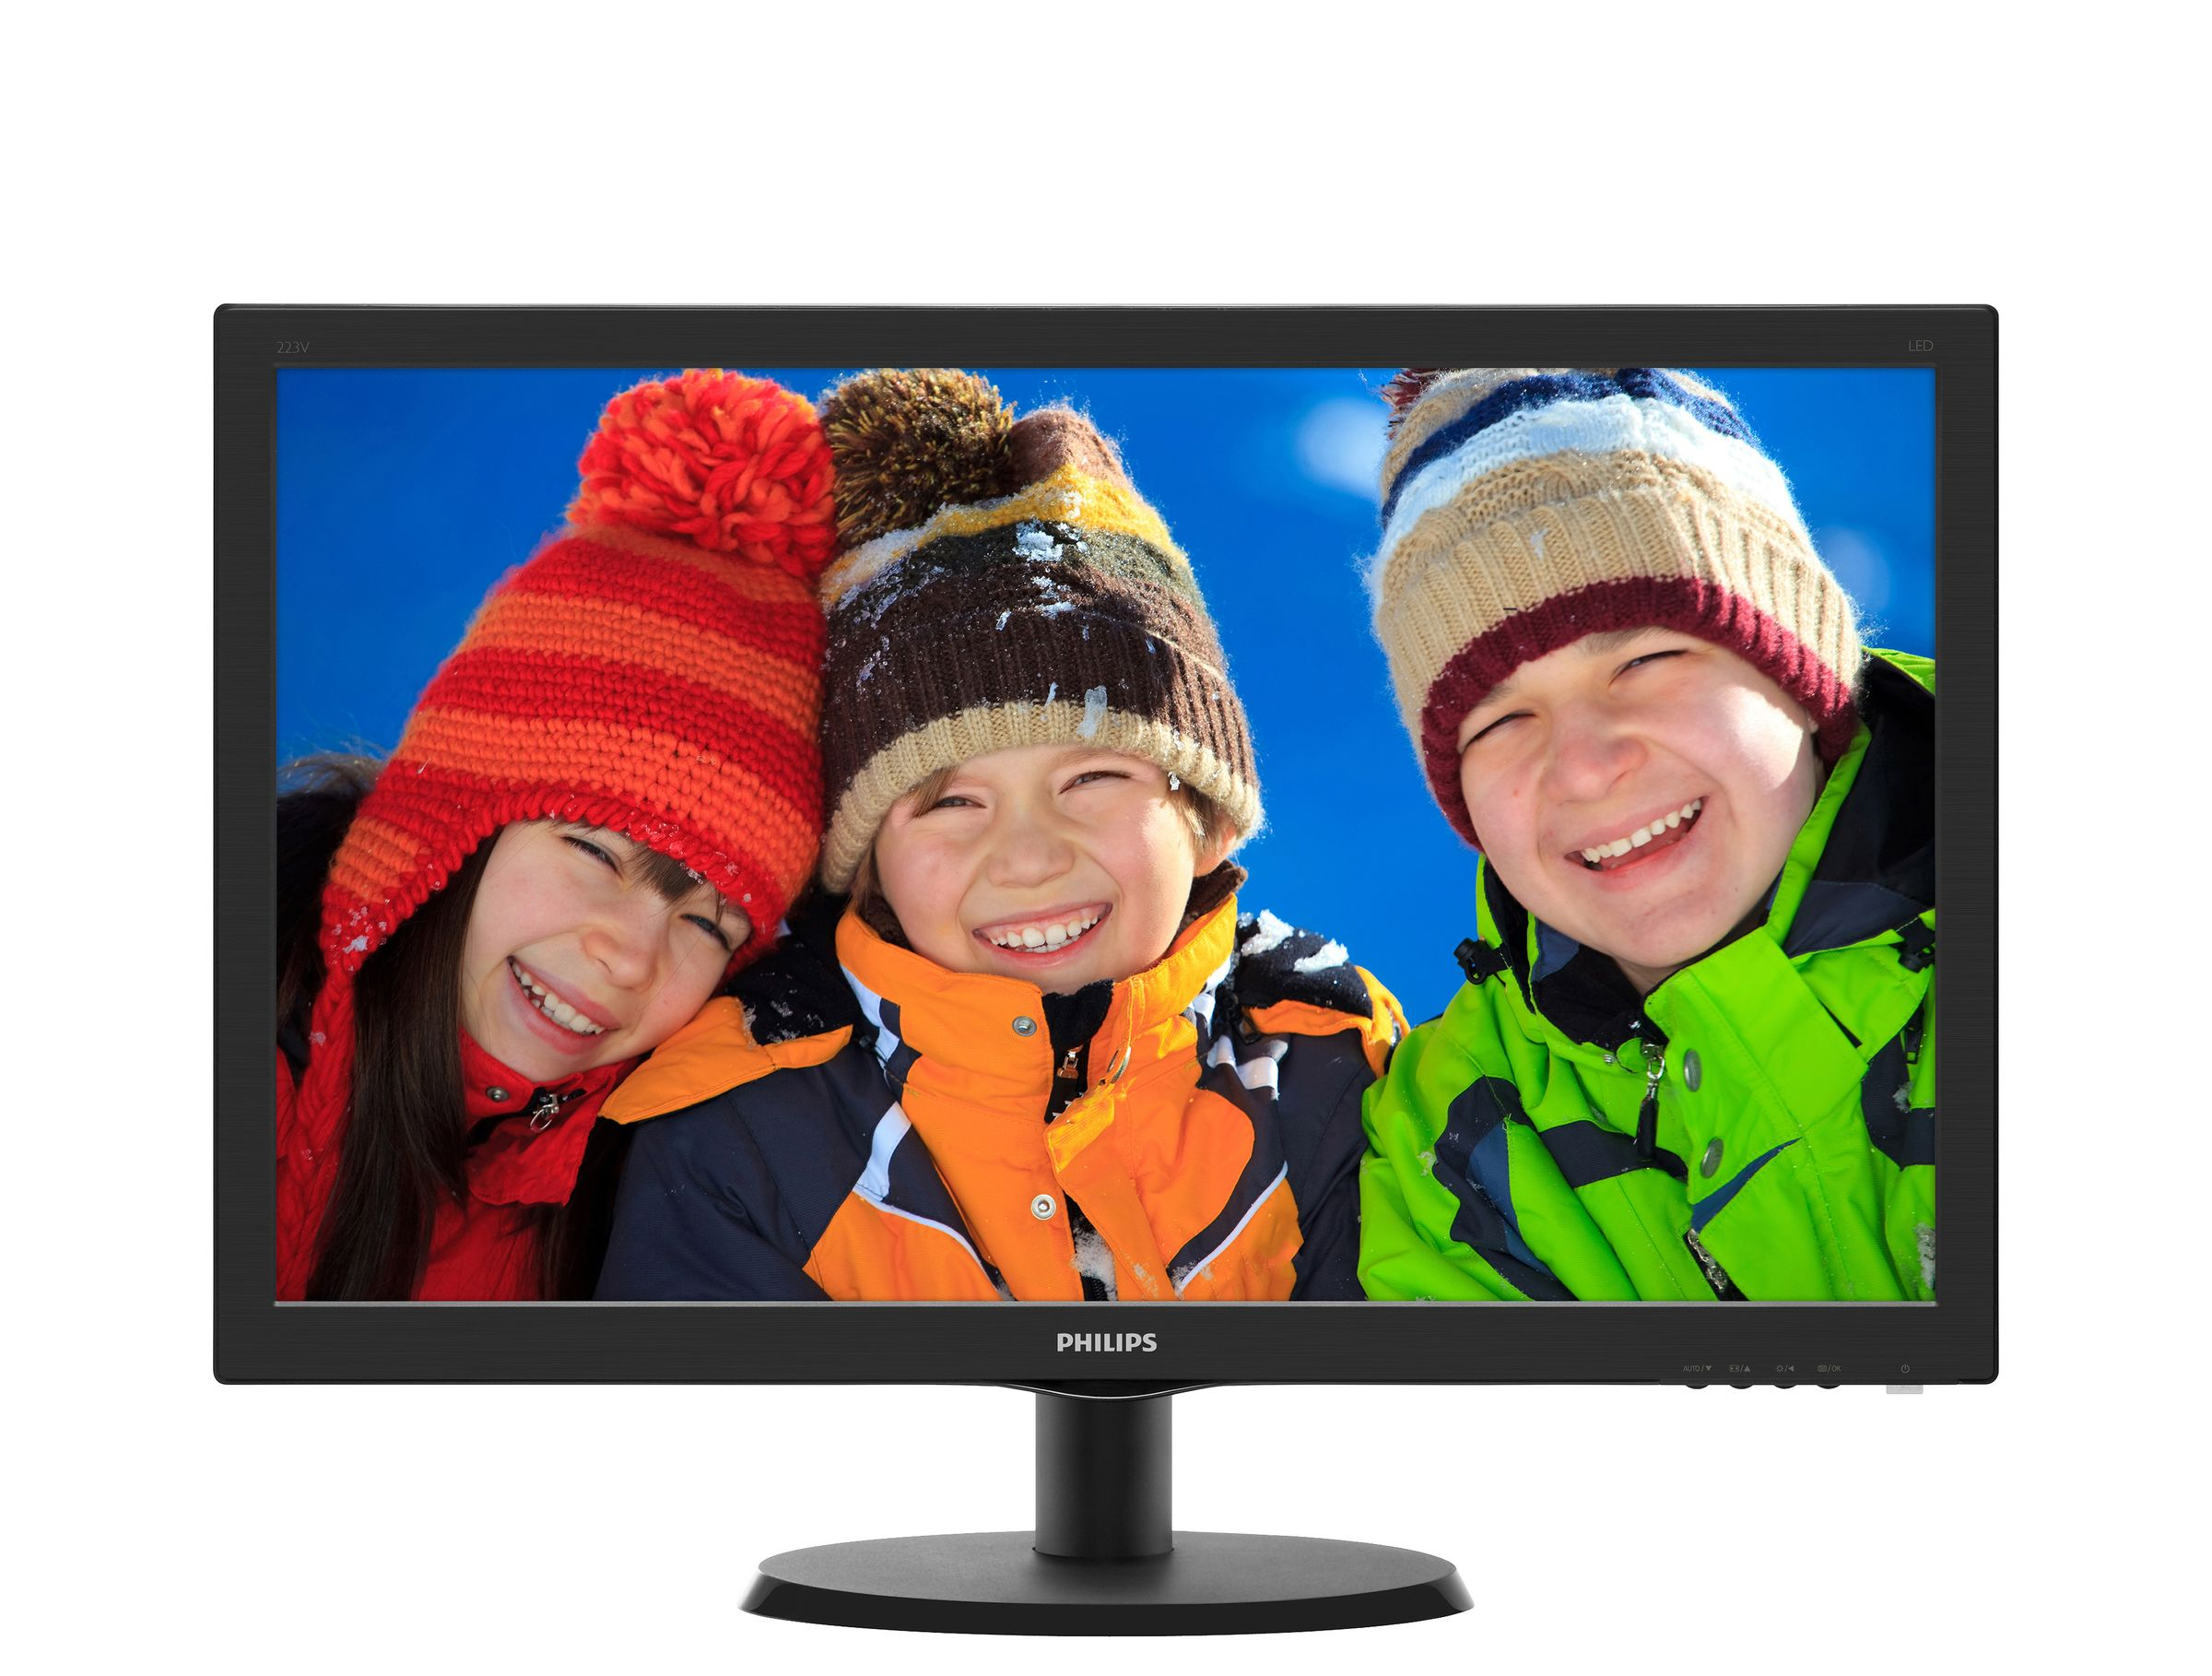 PHILIPS MONITOR LED 21.5